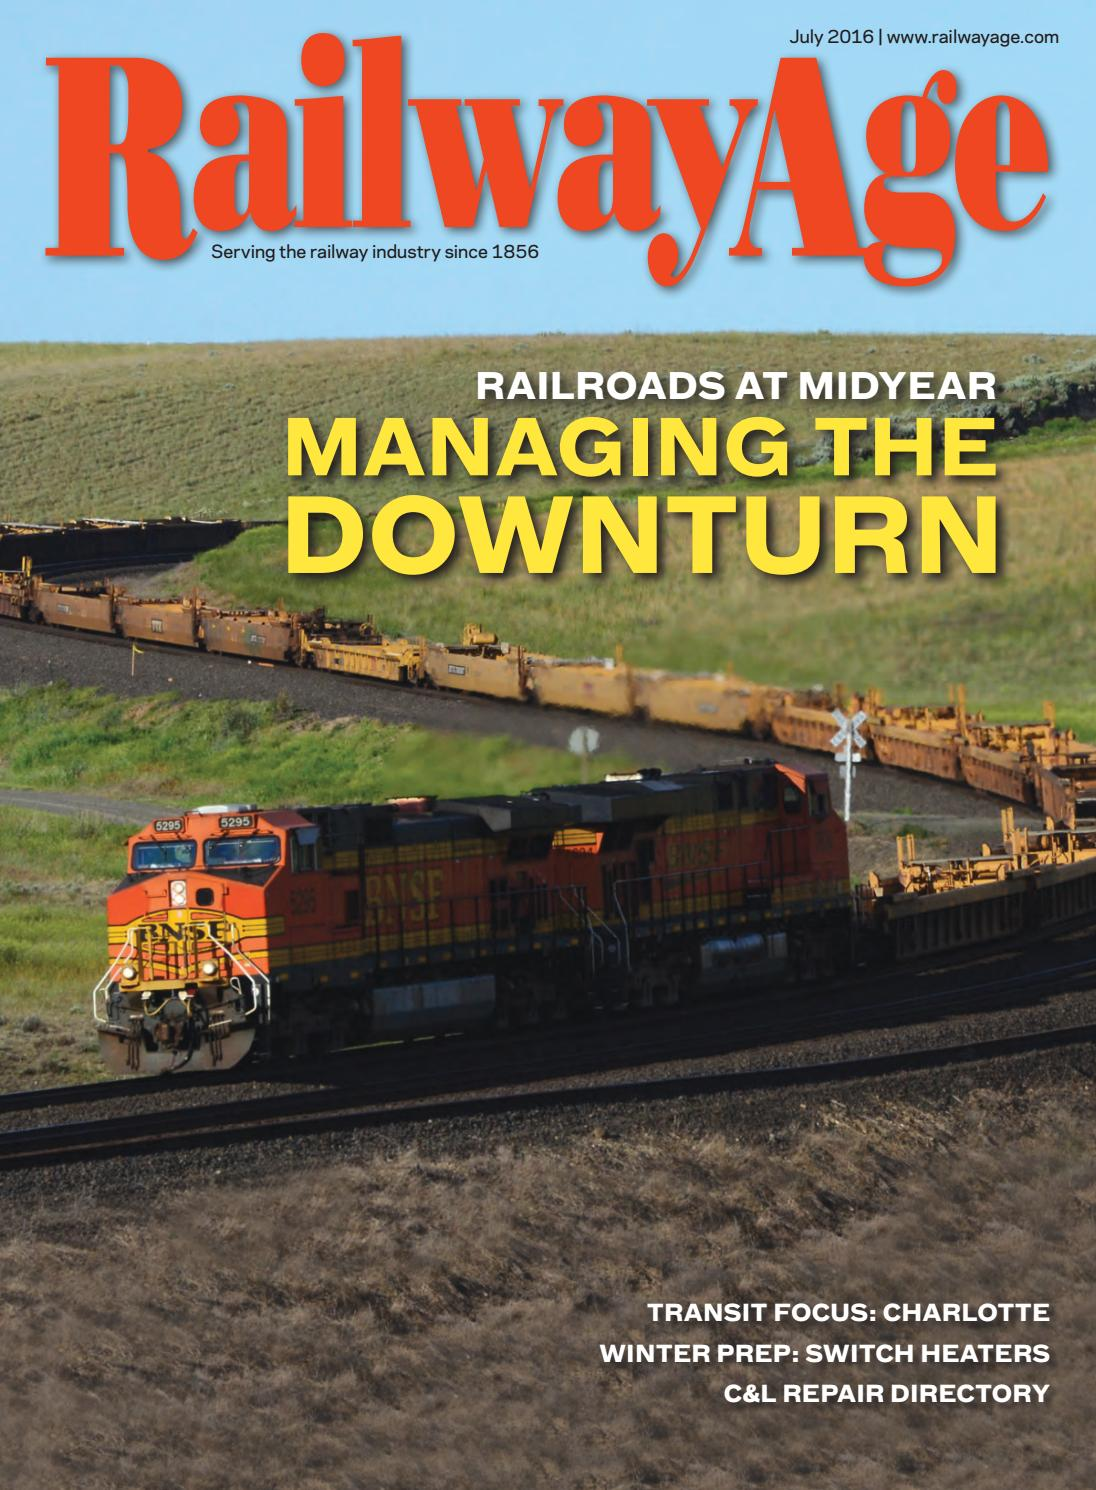 July 2016 Railway Age By Issuu Printed Circuit Board Stock Image F003 0396 Science Photo Library